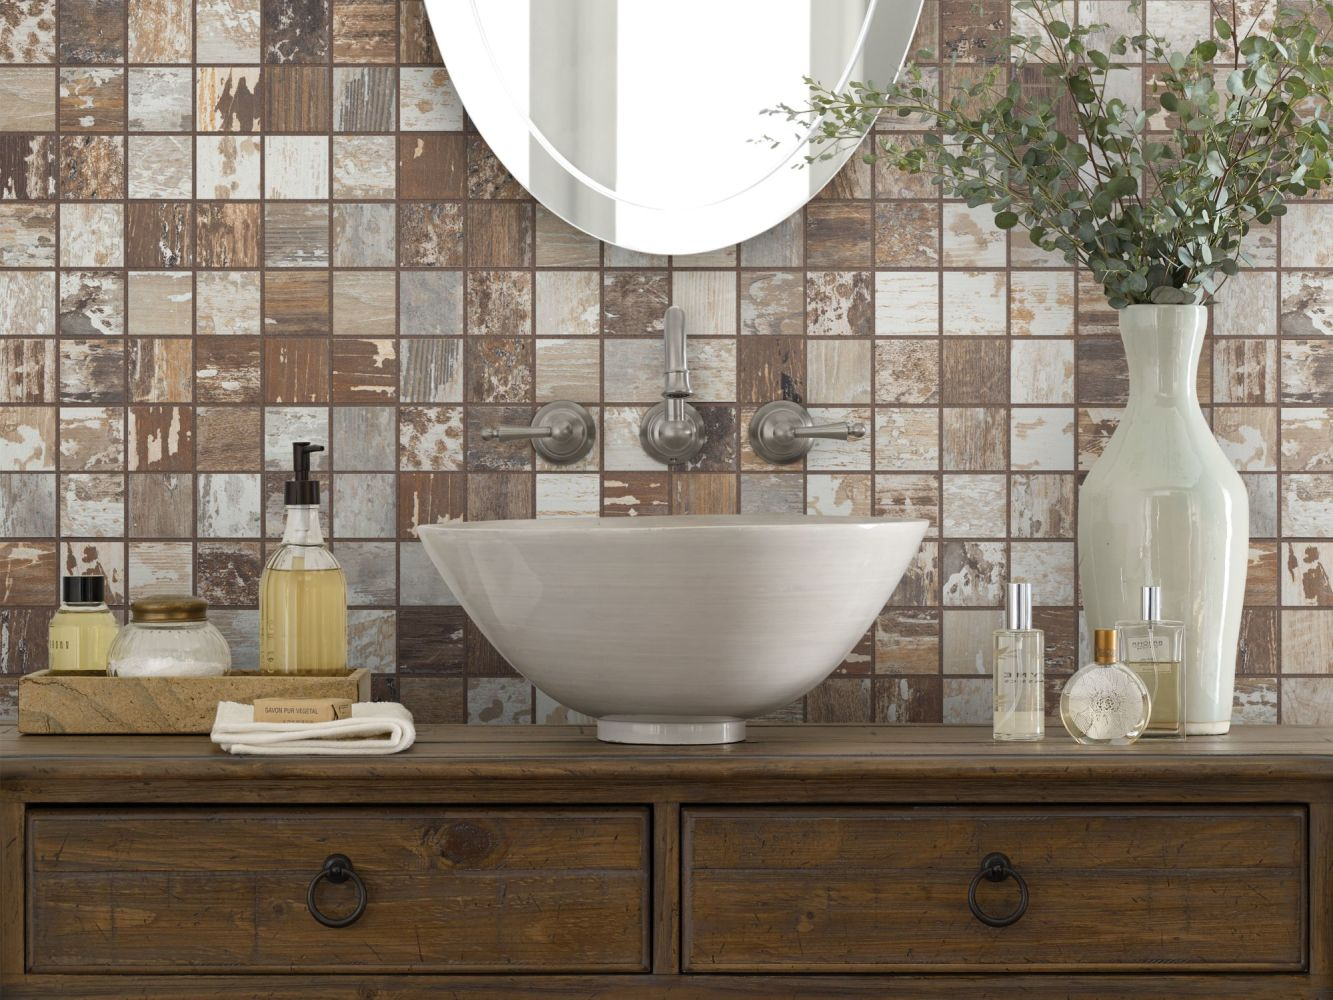 Shaw Floors Toll Brothers Ceramics Sleepy Hollow Mosaic Beech 00170_TL48C